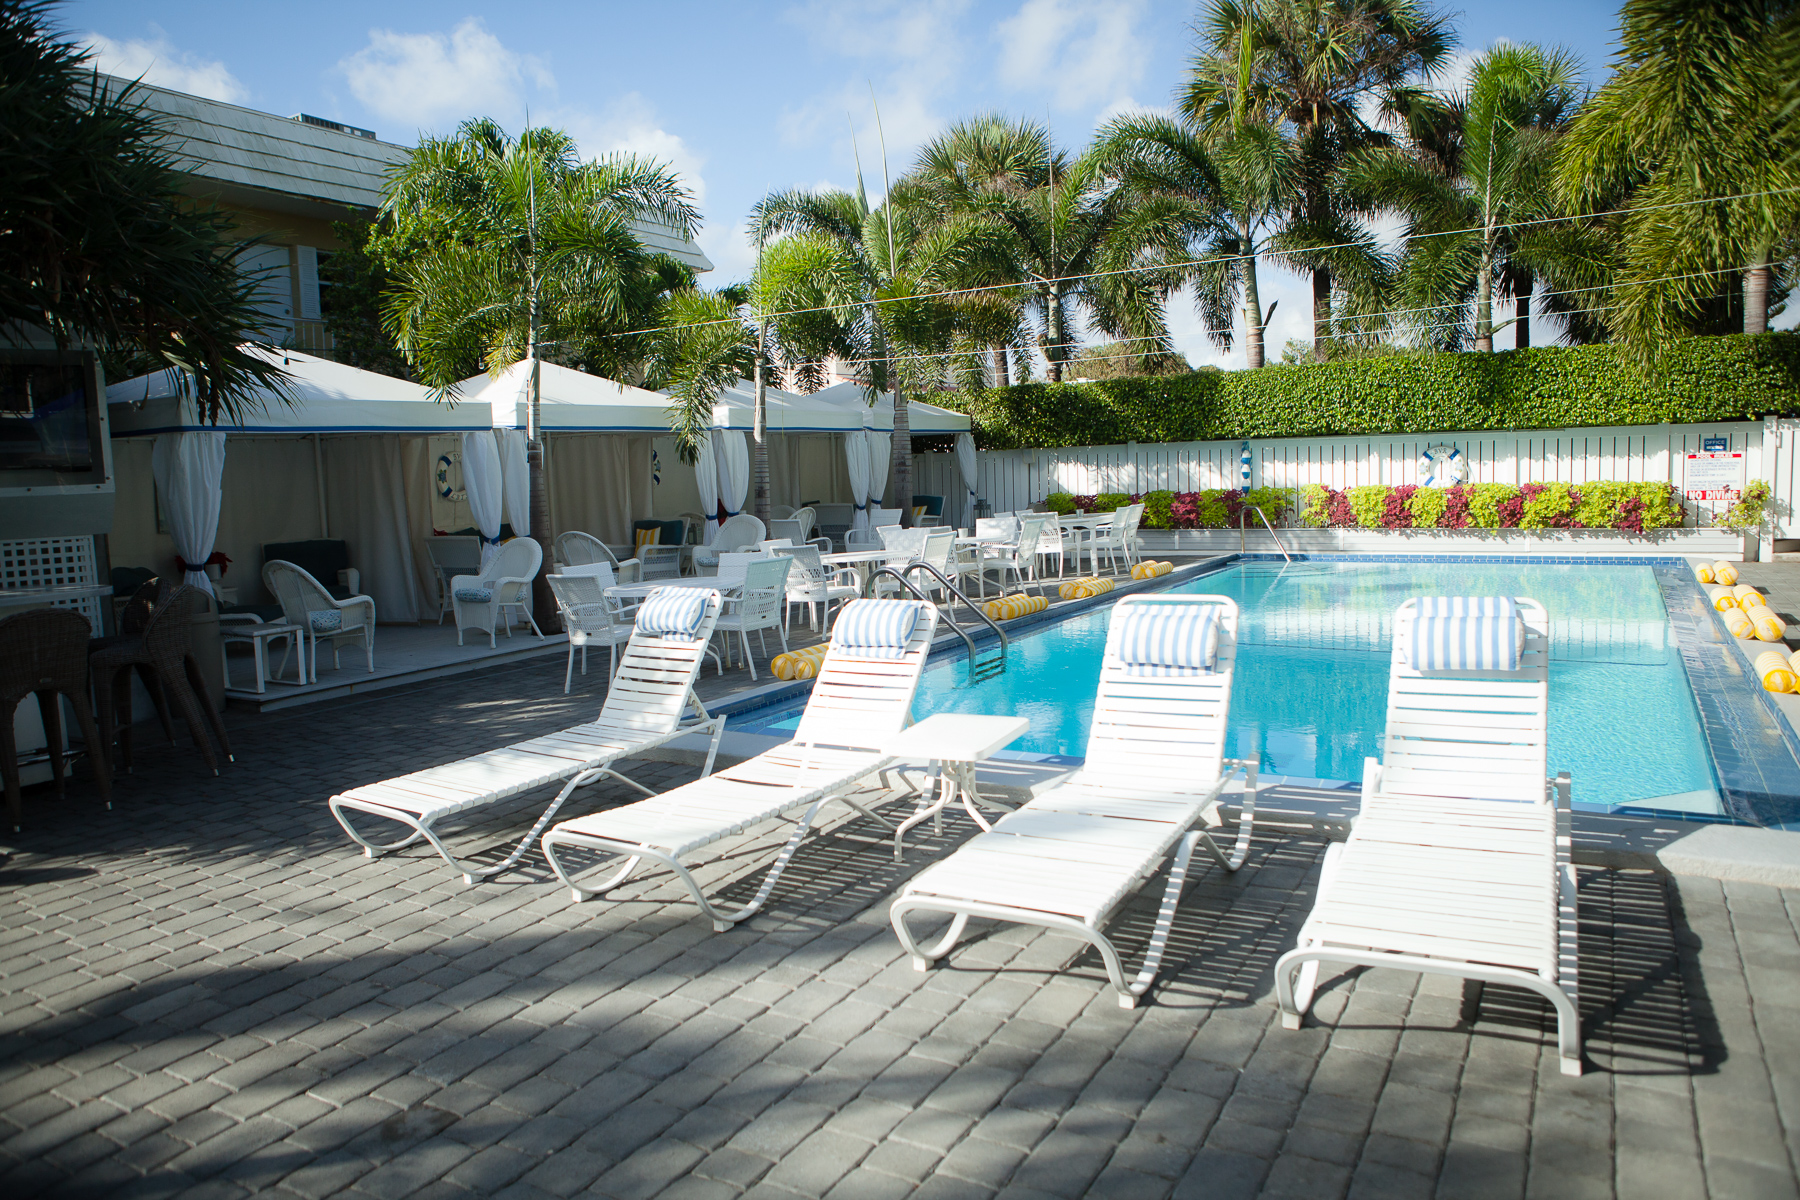 Pools & Cabanas - We feature two heated pools for swimming and multiple cabanas for a reprieve from the heat. Our rooftop deck overlooks the Atlantic Ocean.